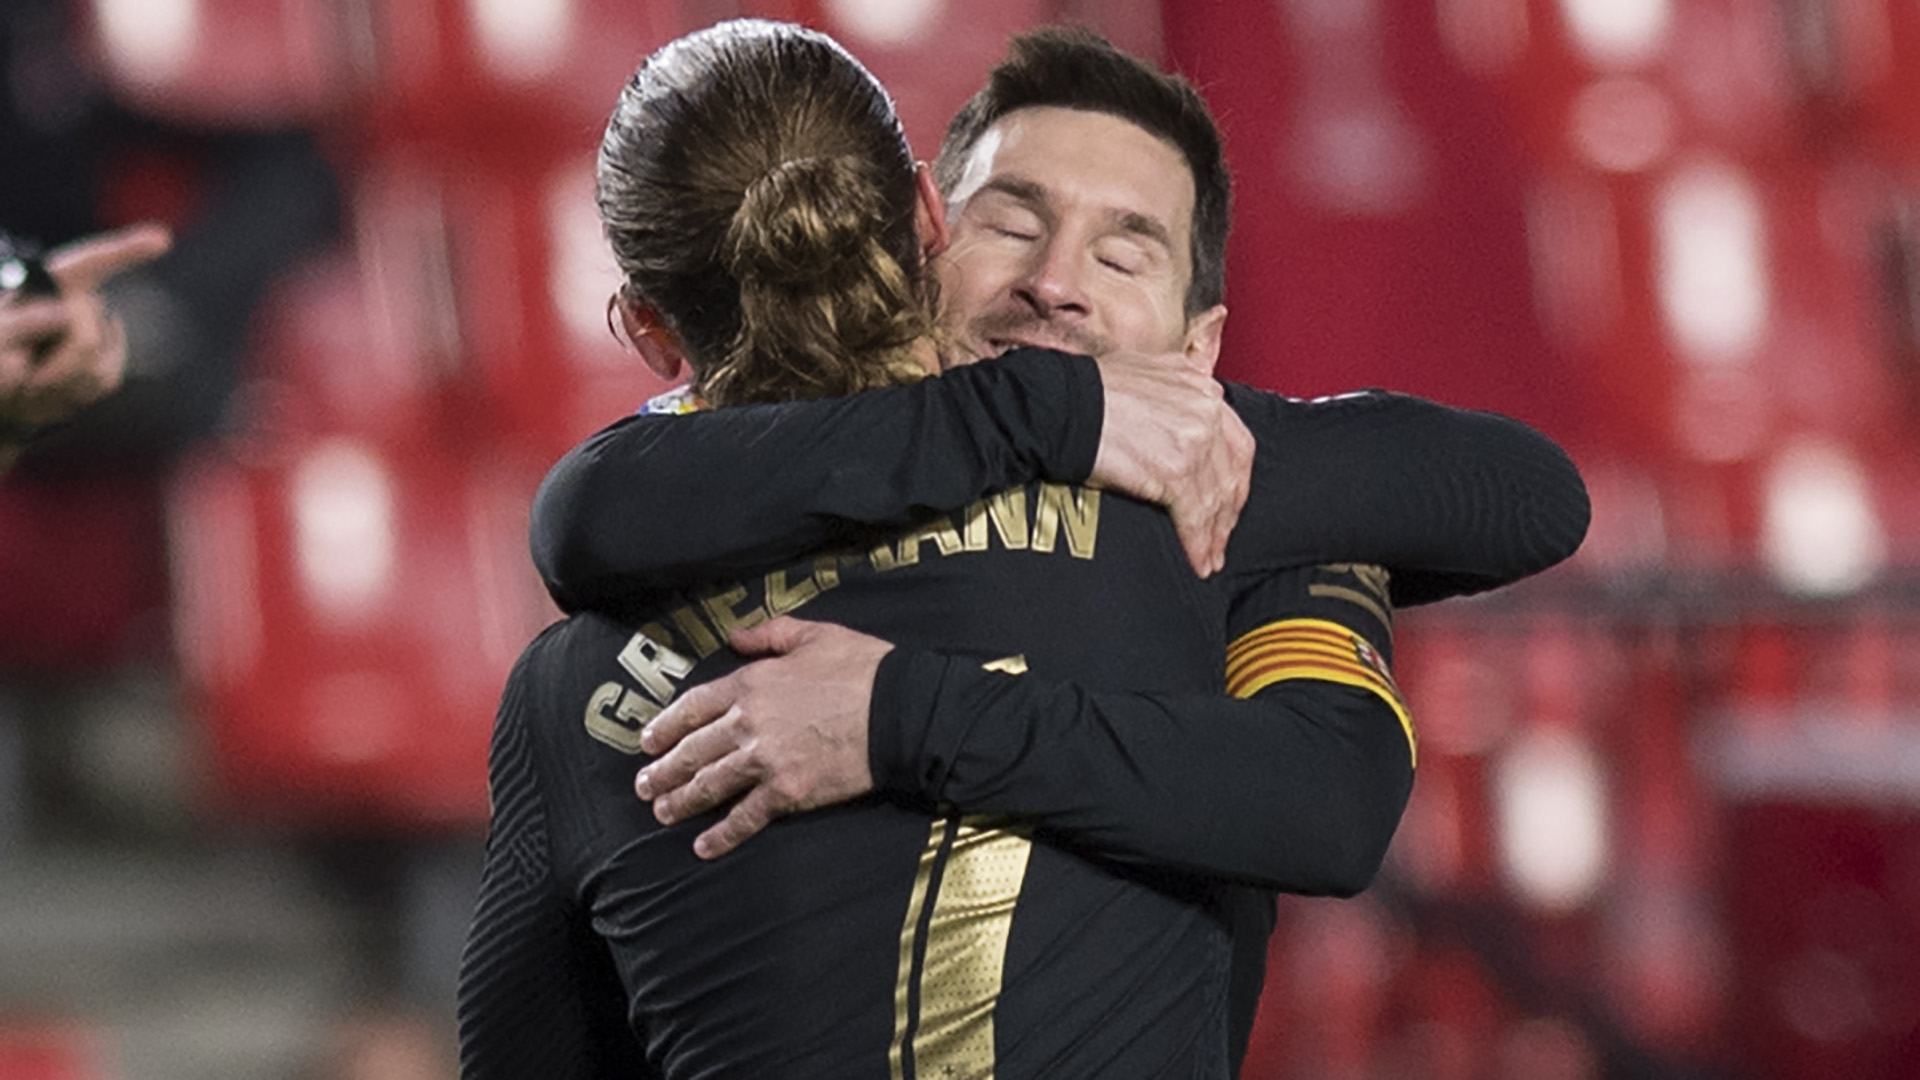 Griezmann hoping to see more magic from 'legend' Messi as Barcelona exit talk rumbles on